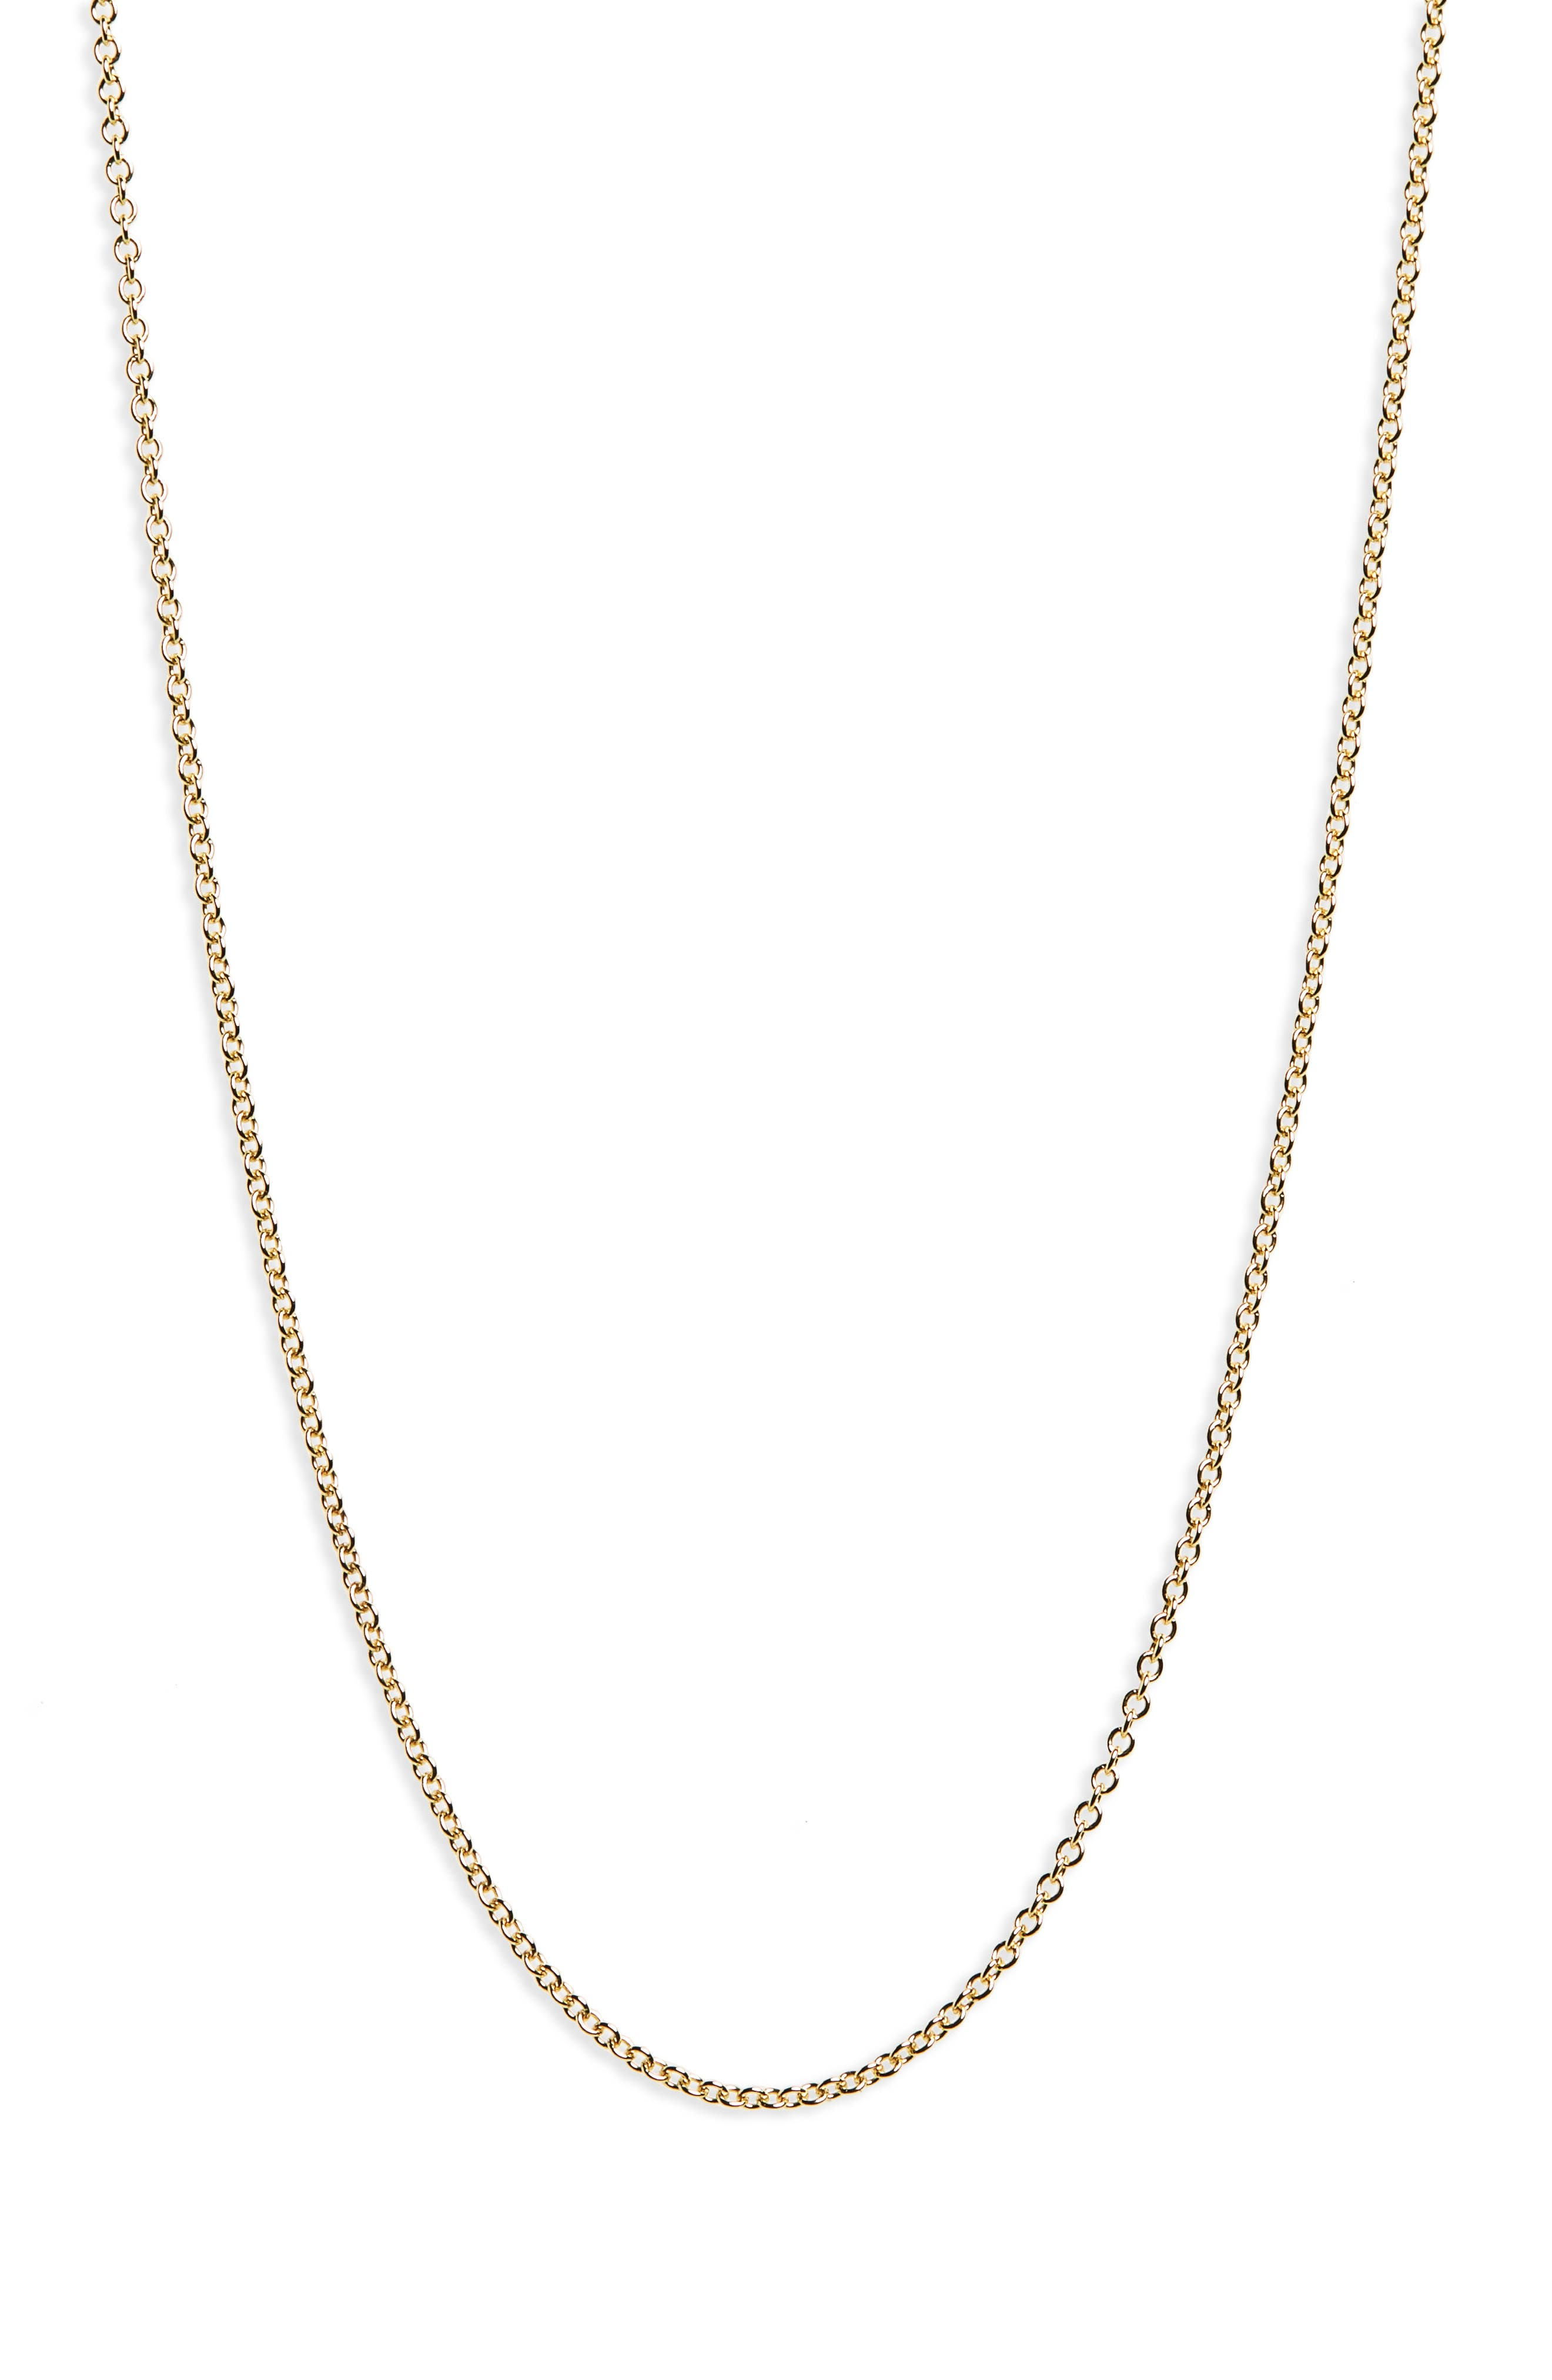 14K Gold Rolo Chain Necklace,                             Main thumbnail 1, color,                             Yellow Gold